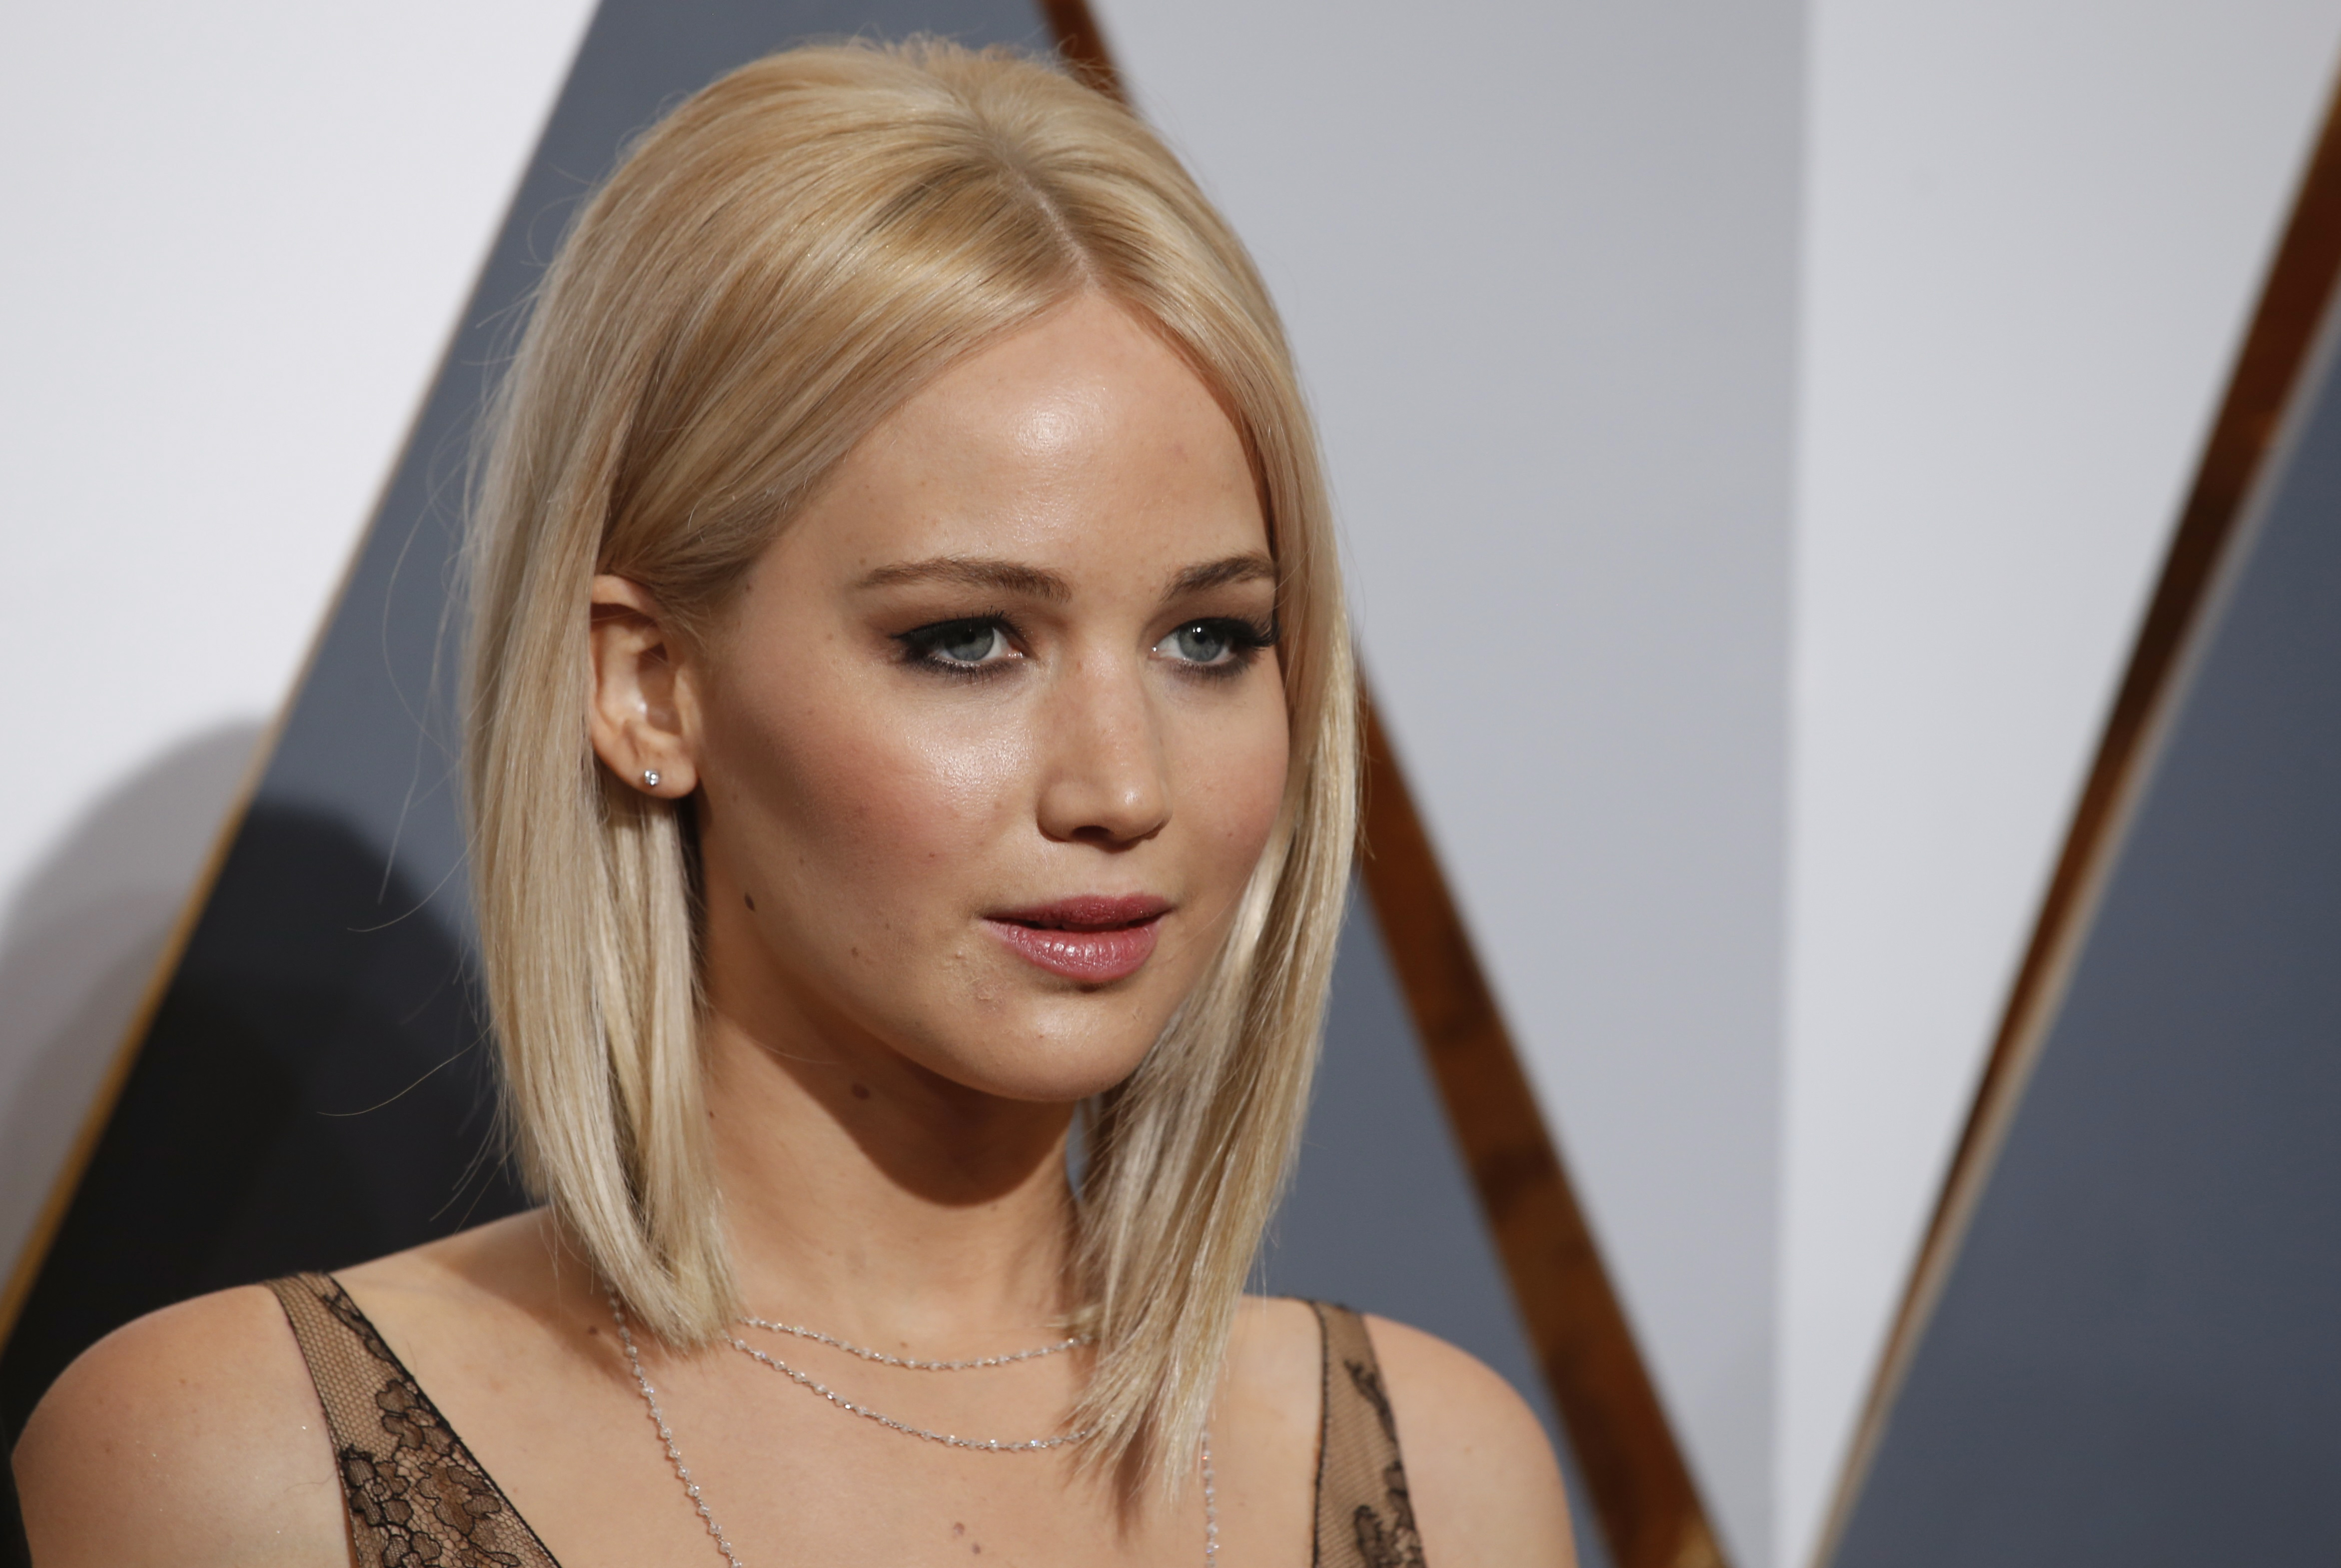 ... nude photos of female celebrities will plead guilty | PBS NewsHour